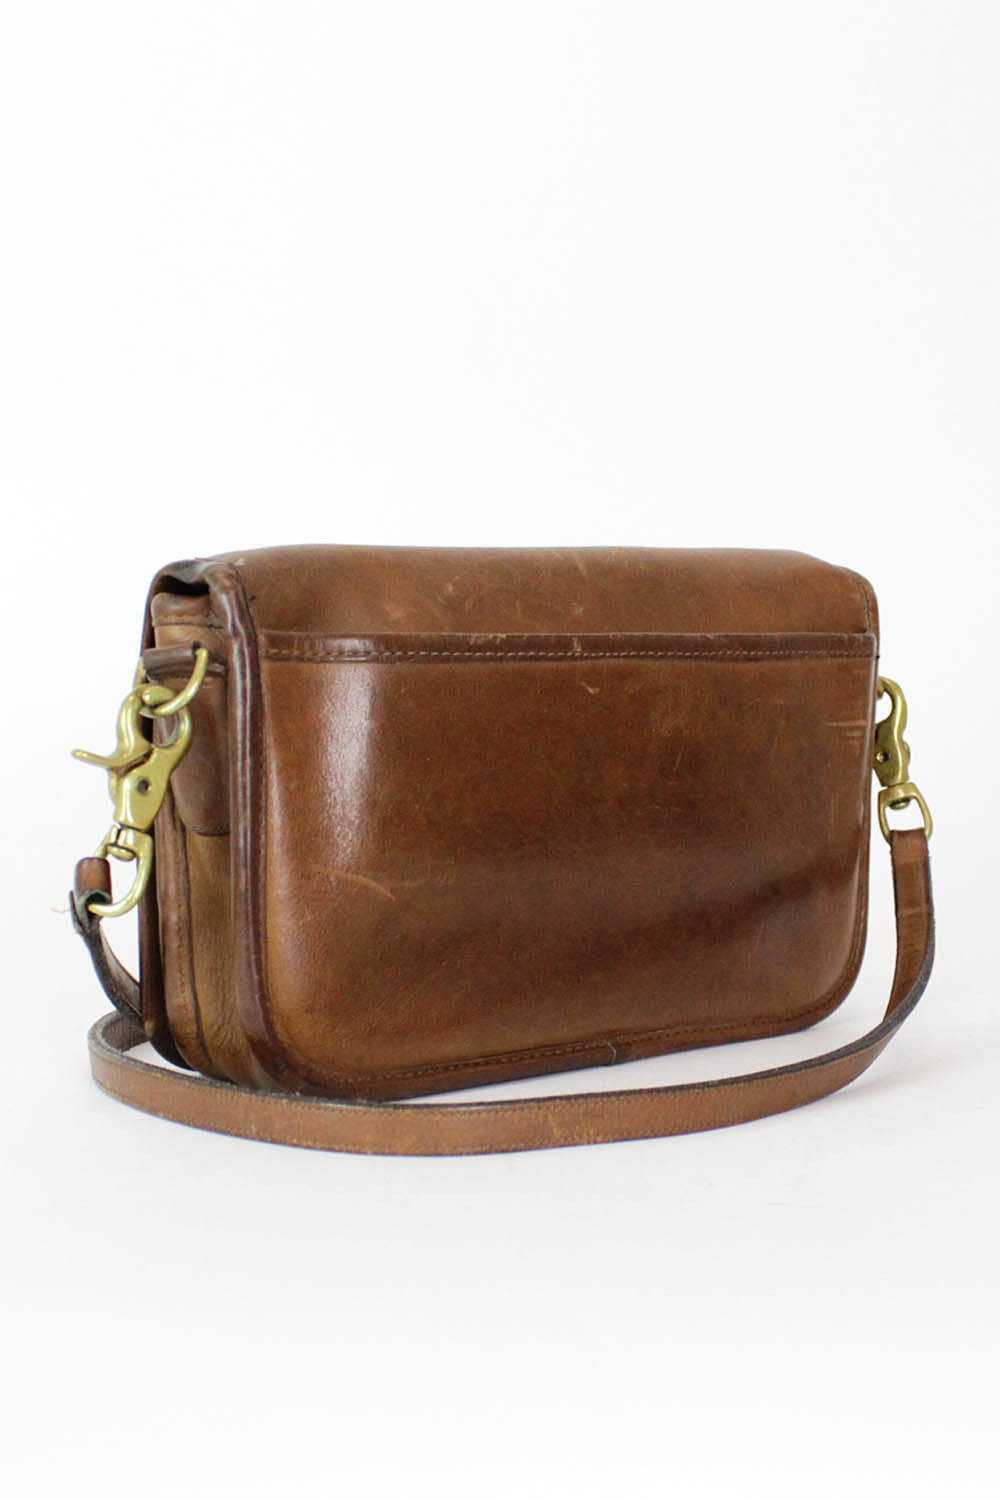 70s Coach Chestnut Leather Crossbody